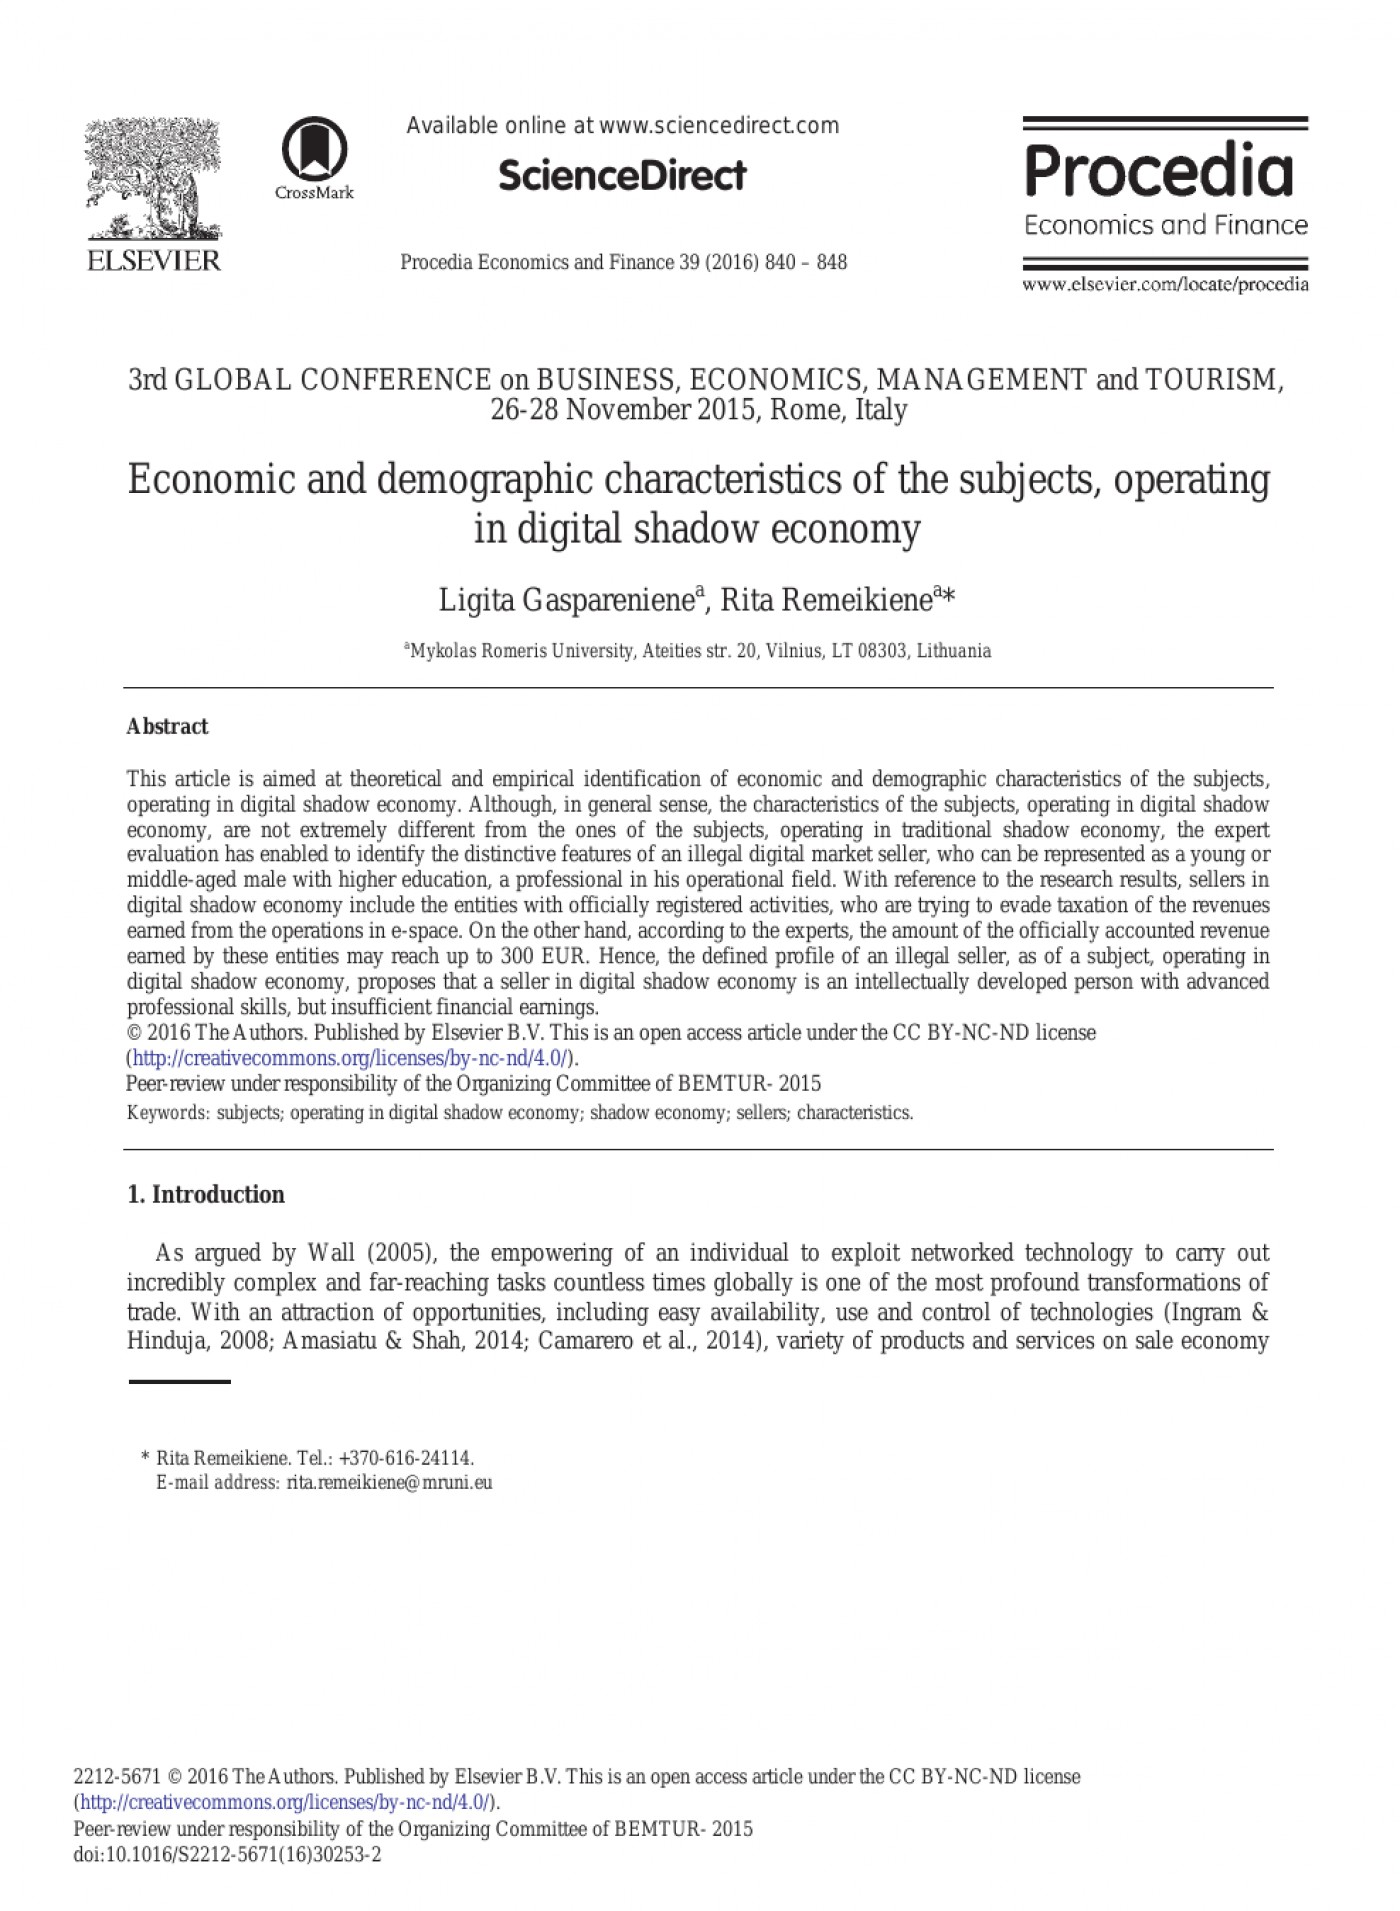 005 Research Paper Remarkable Economy Managerial Economics Topics Sharing Cashless 1400